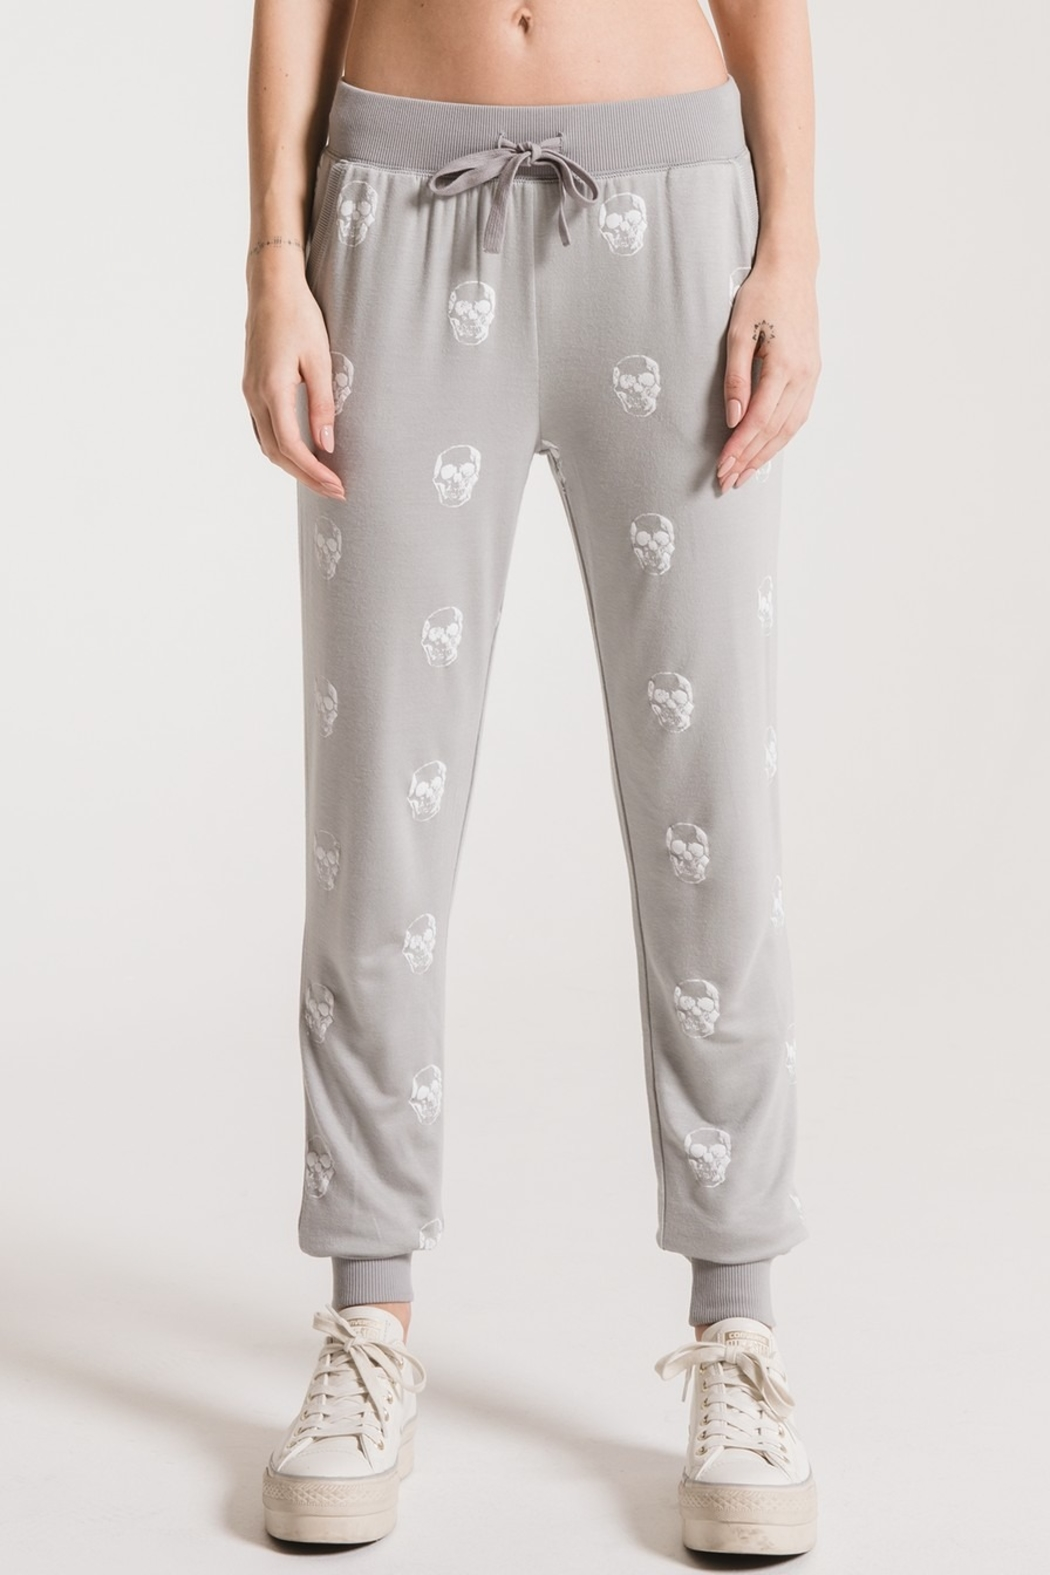 z supply Skull Jogger Pant - Front Cropped Image